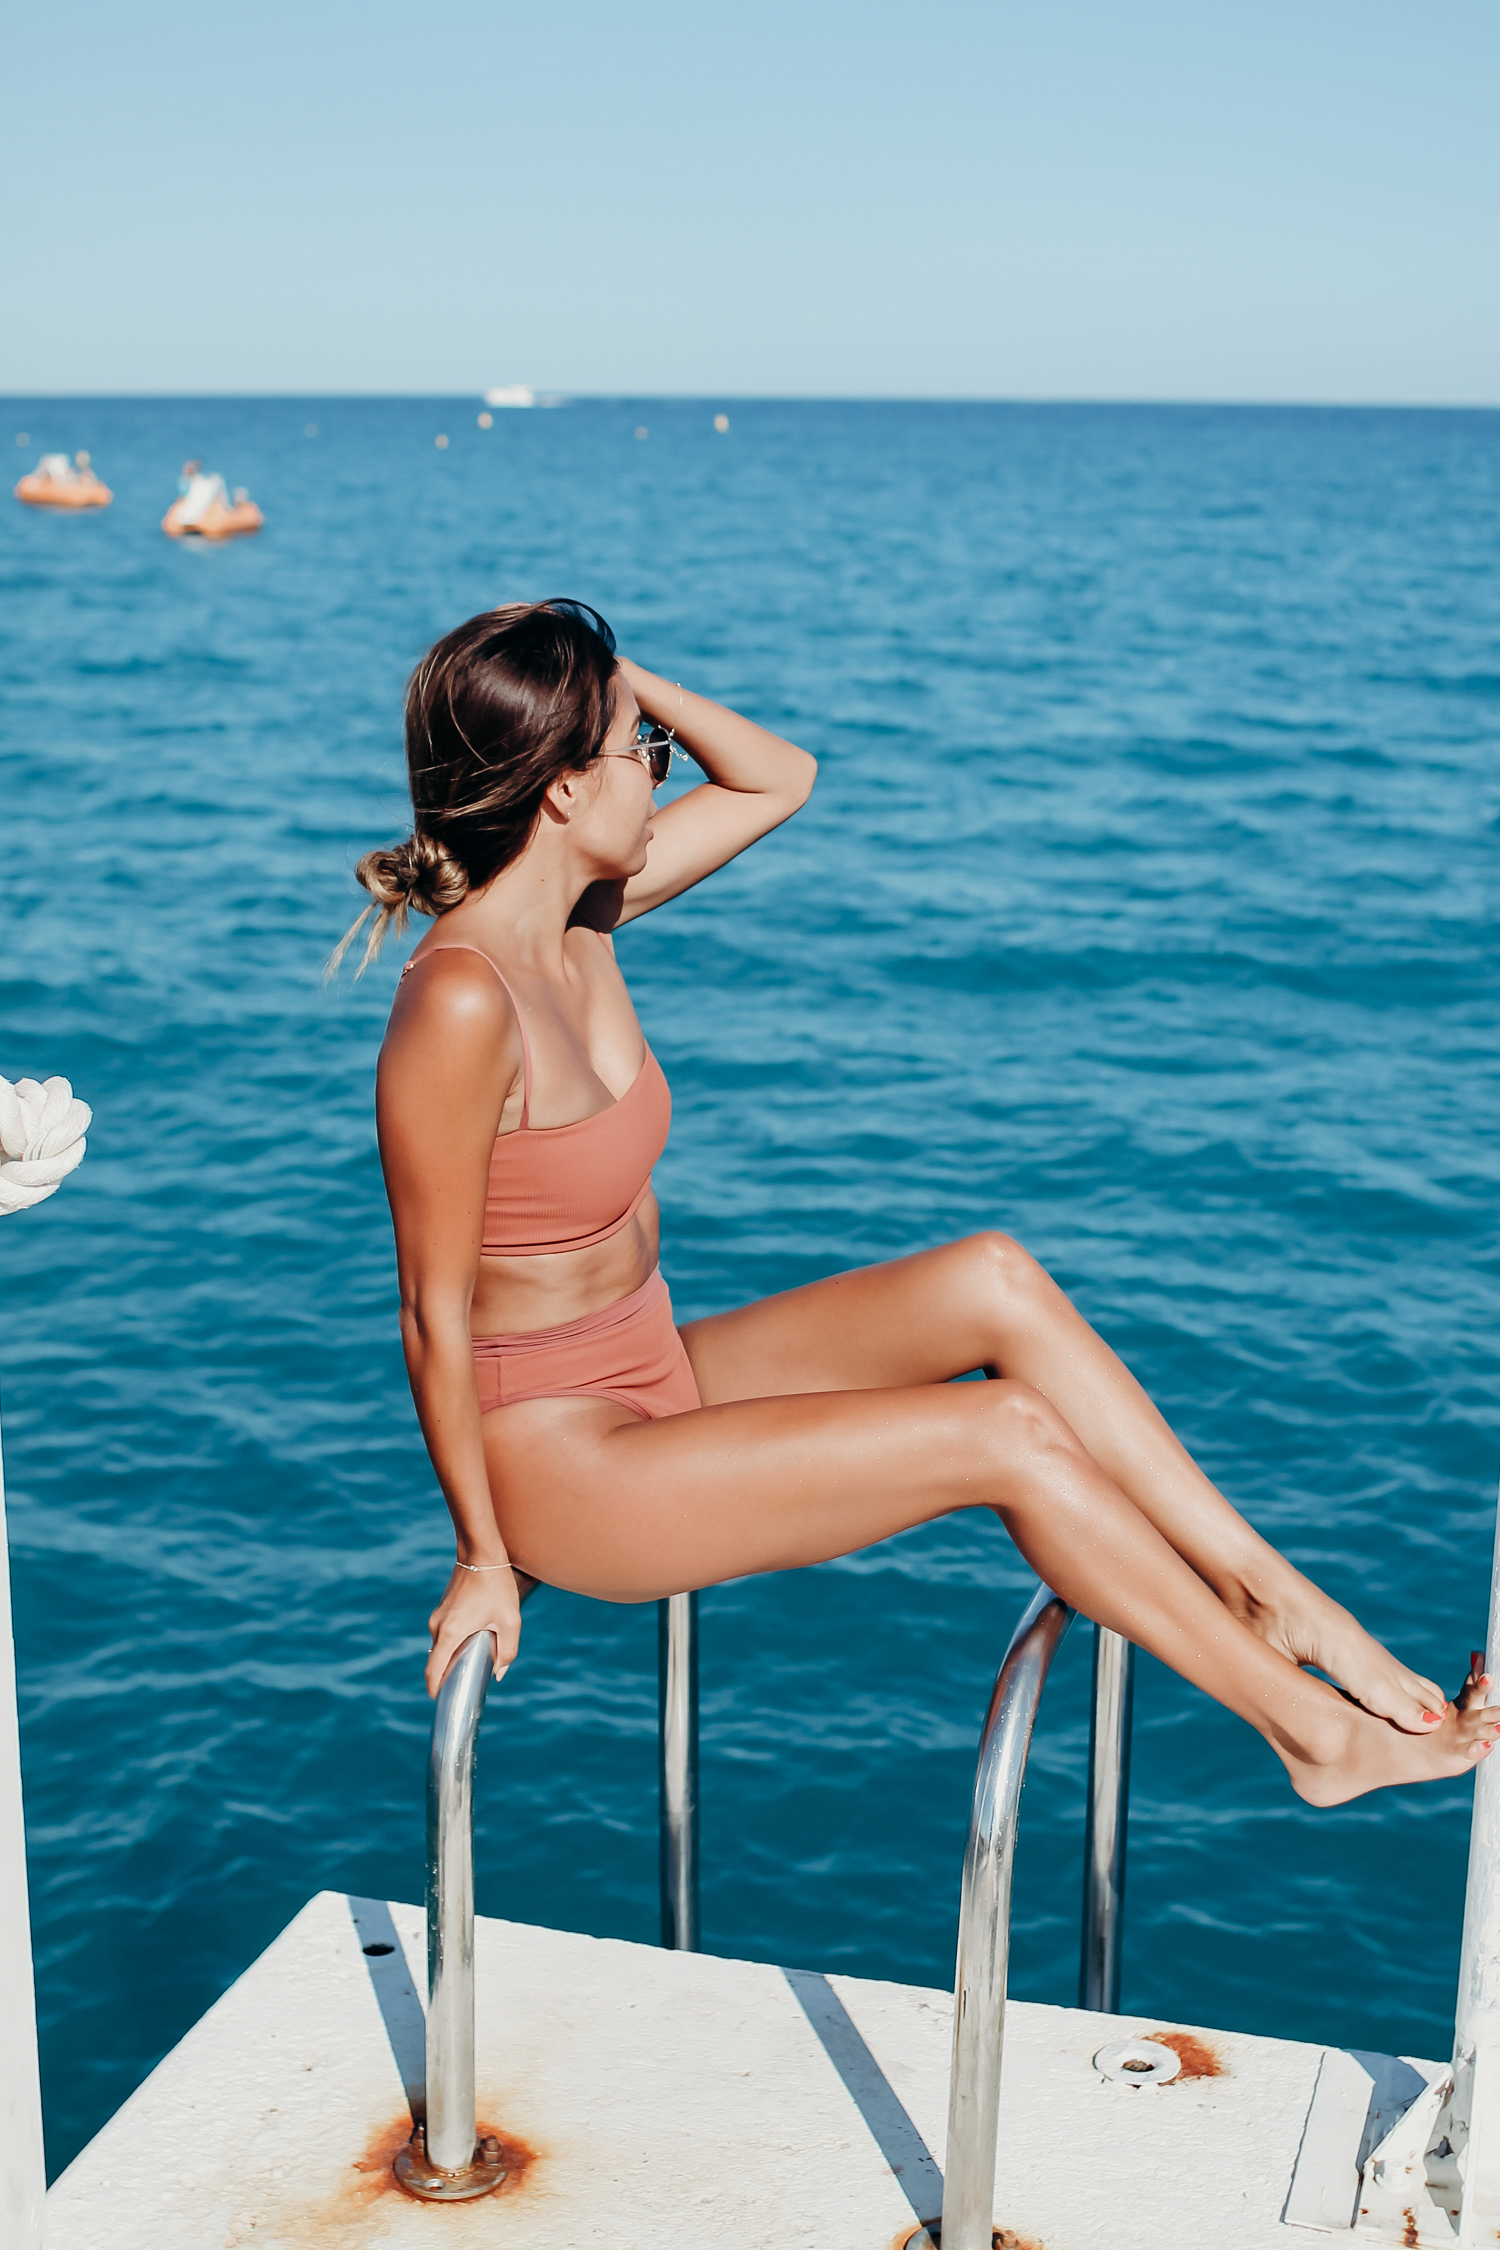 Everyday Pursuits in Antibes, France wearing L Space RIDIN' HIGH FRENCHI bikini